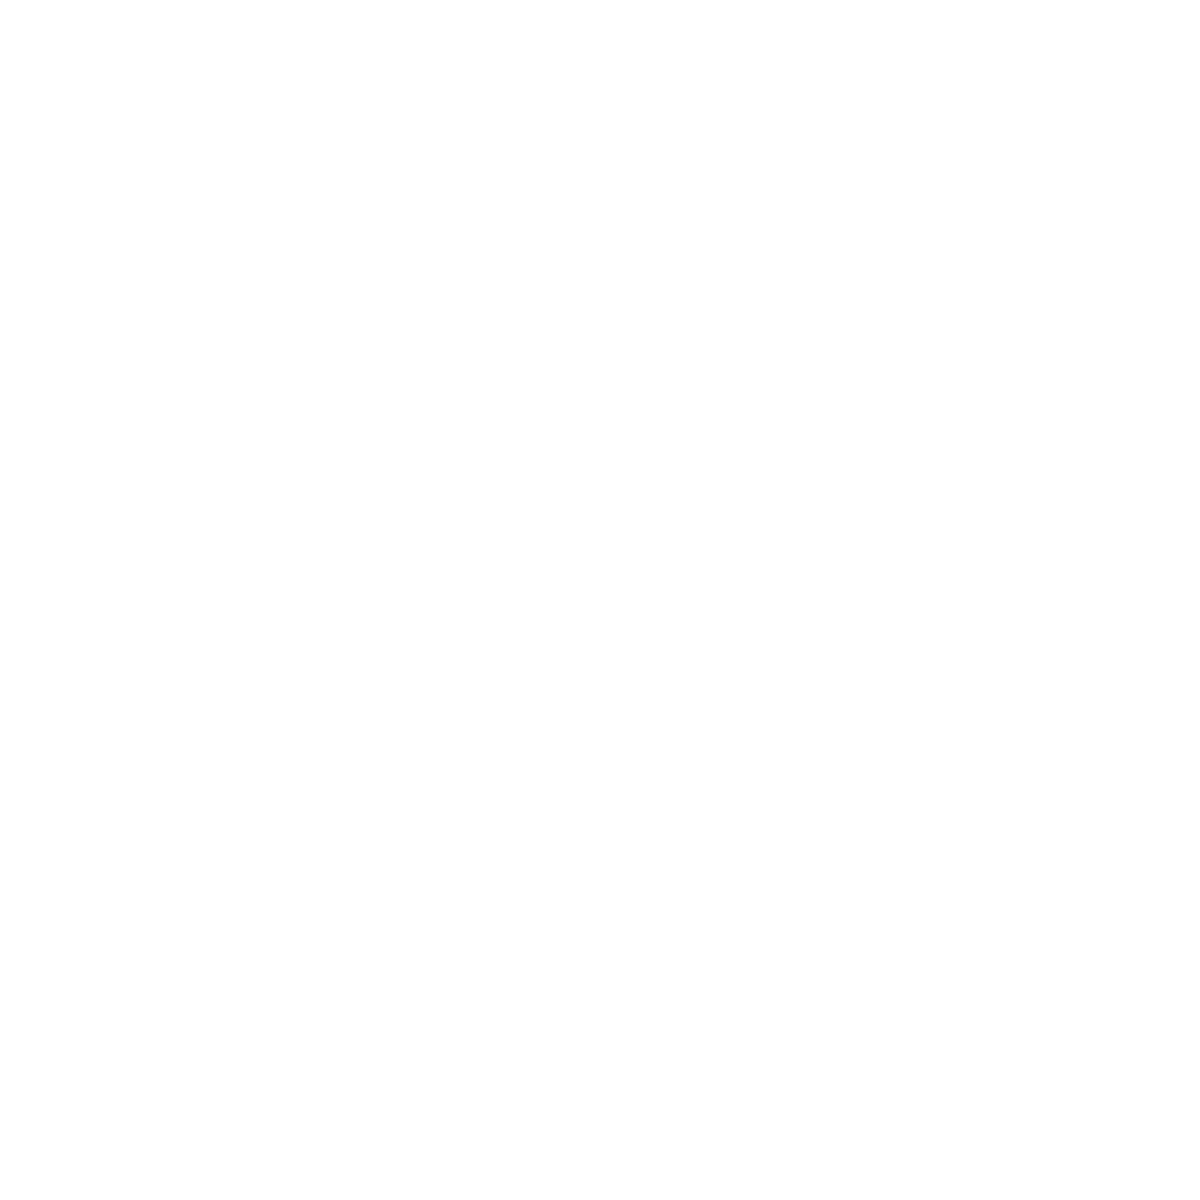 Own Your Strength